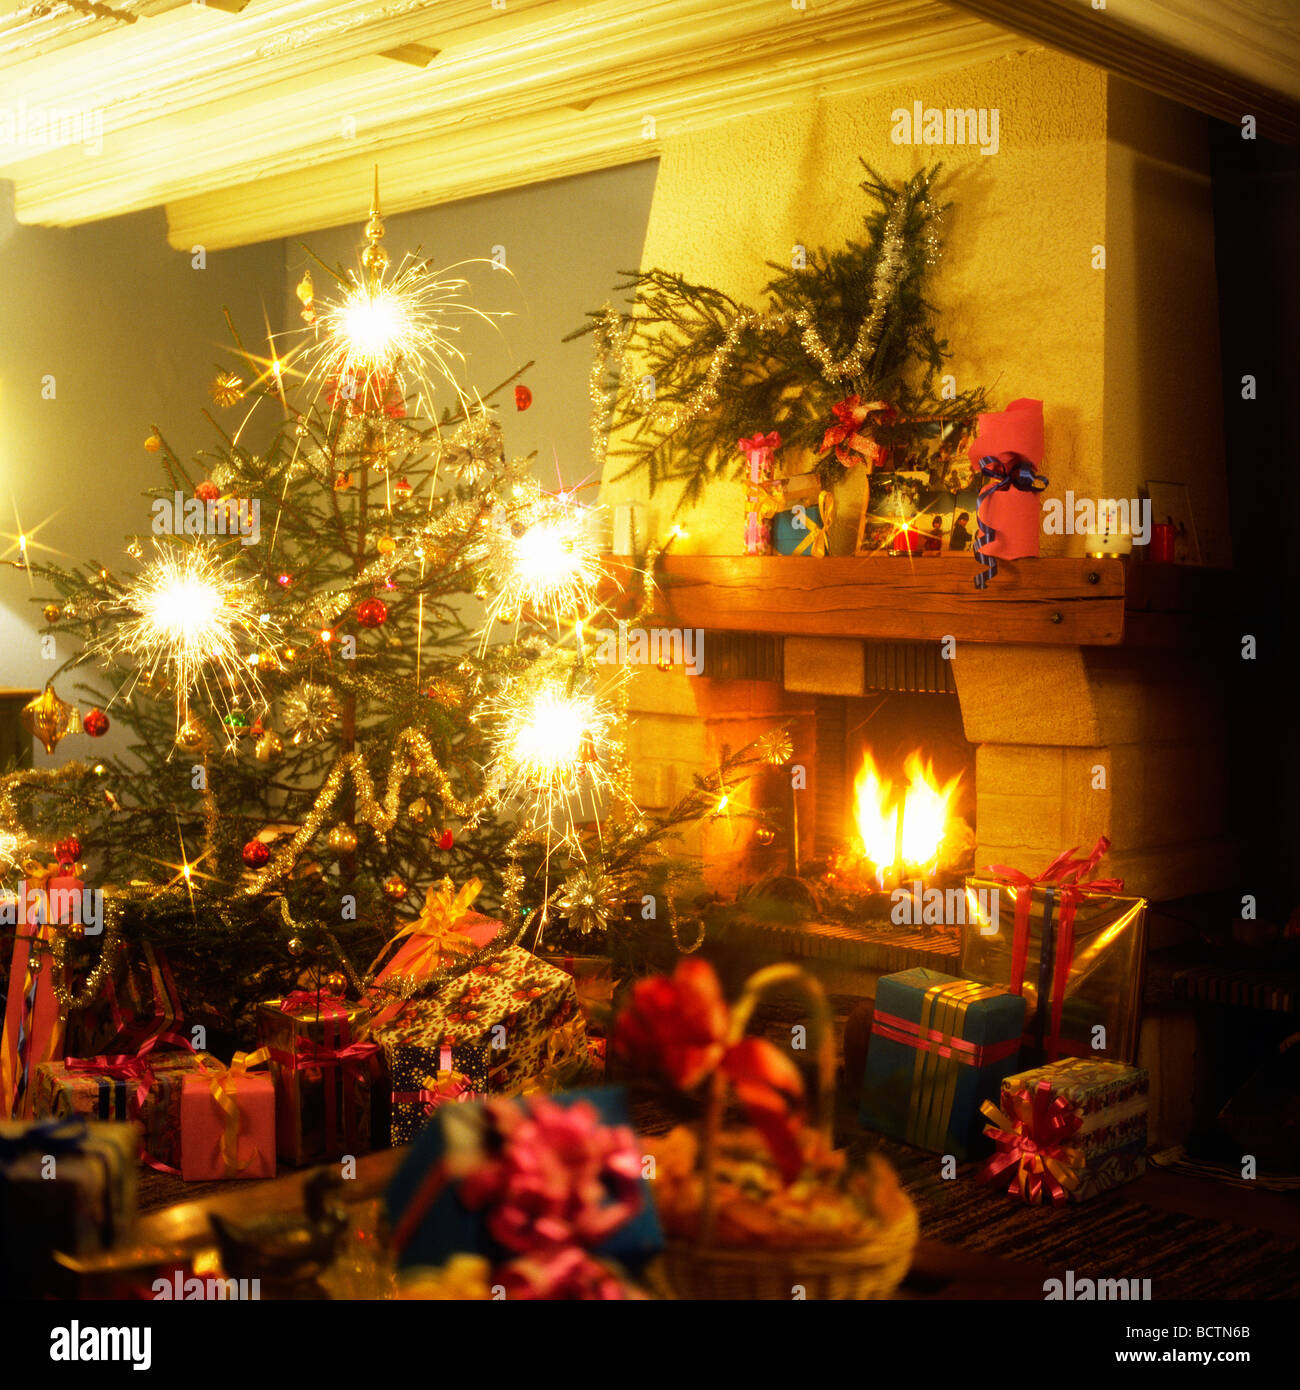 CHRISTMAS PRESENTS UNDER THE TREE WITH SPARKLERS AND FIREPLACE Stock Photo